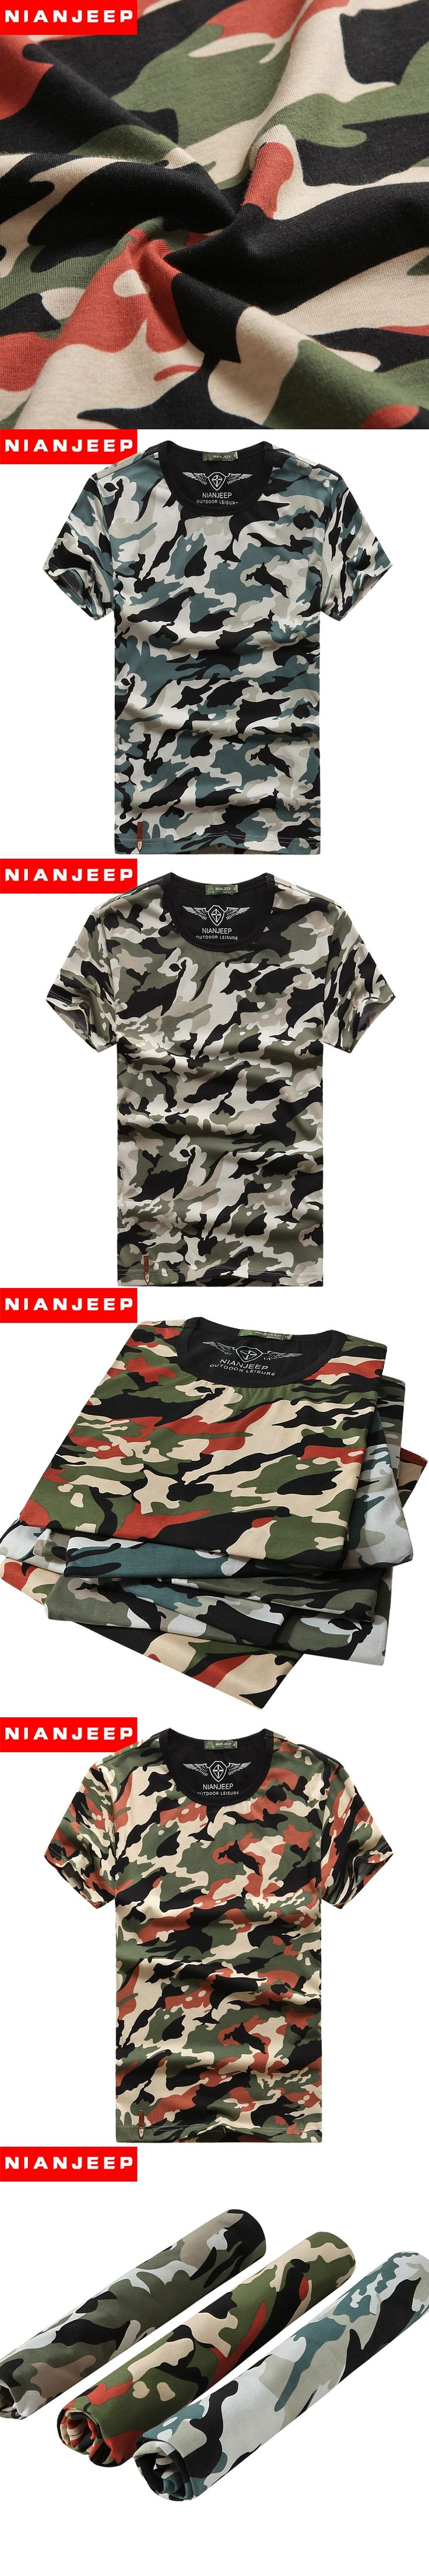 Men Shirt New 2017 Brand Nianjeep Camouflage Breathe Freely and Absorb Sweat Casual Shirts  Army Military camisa masculina